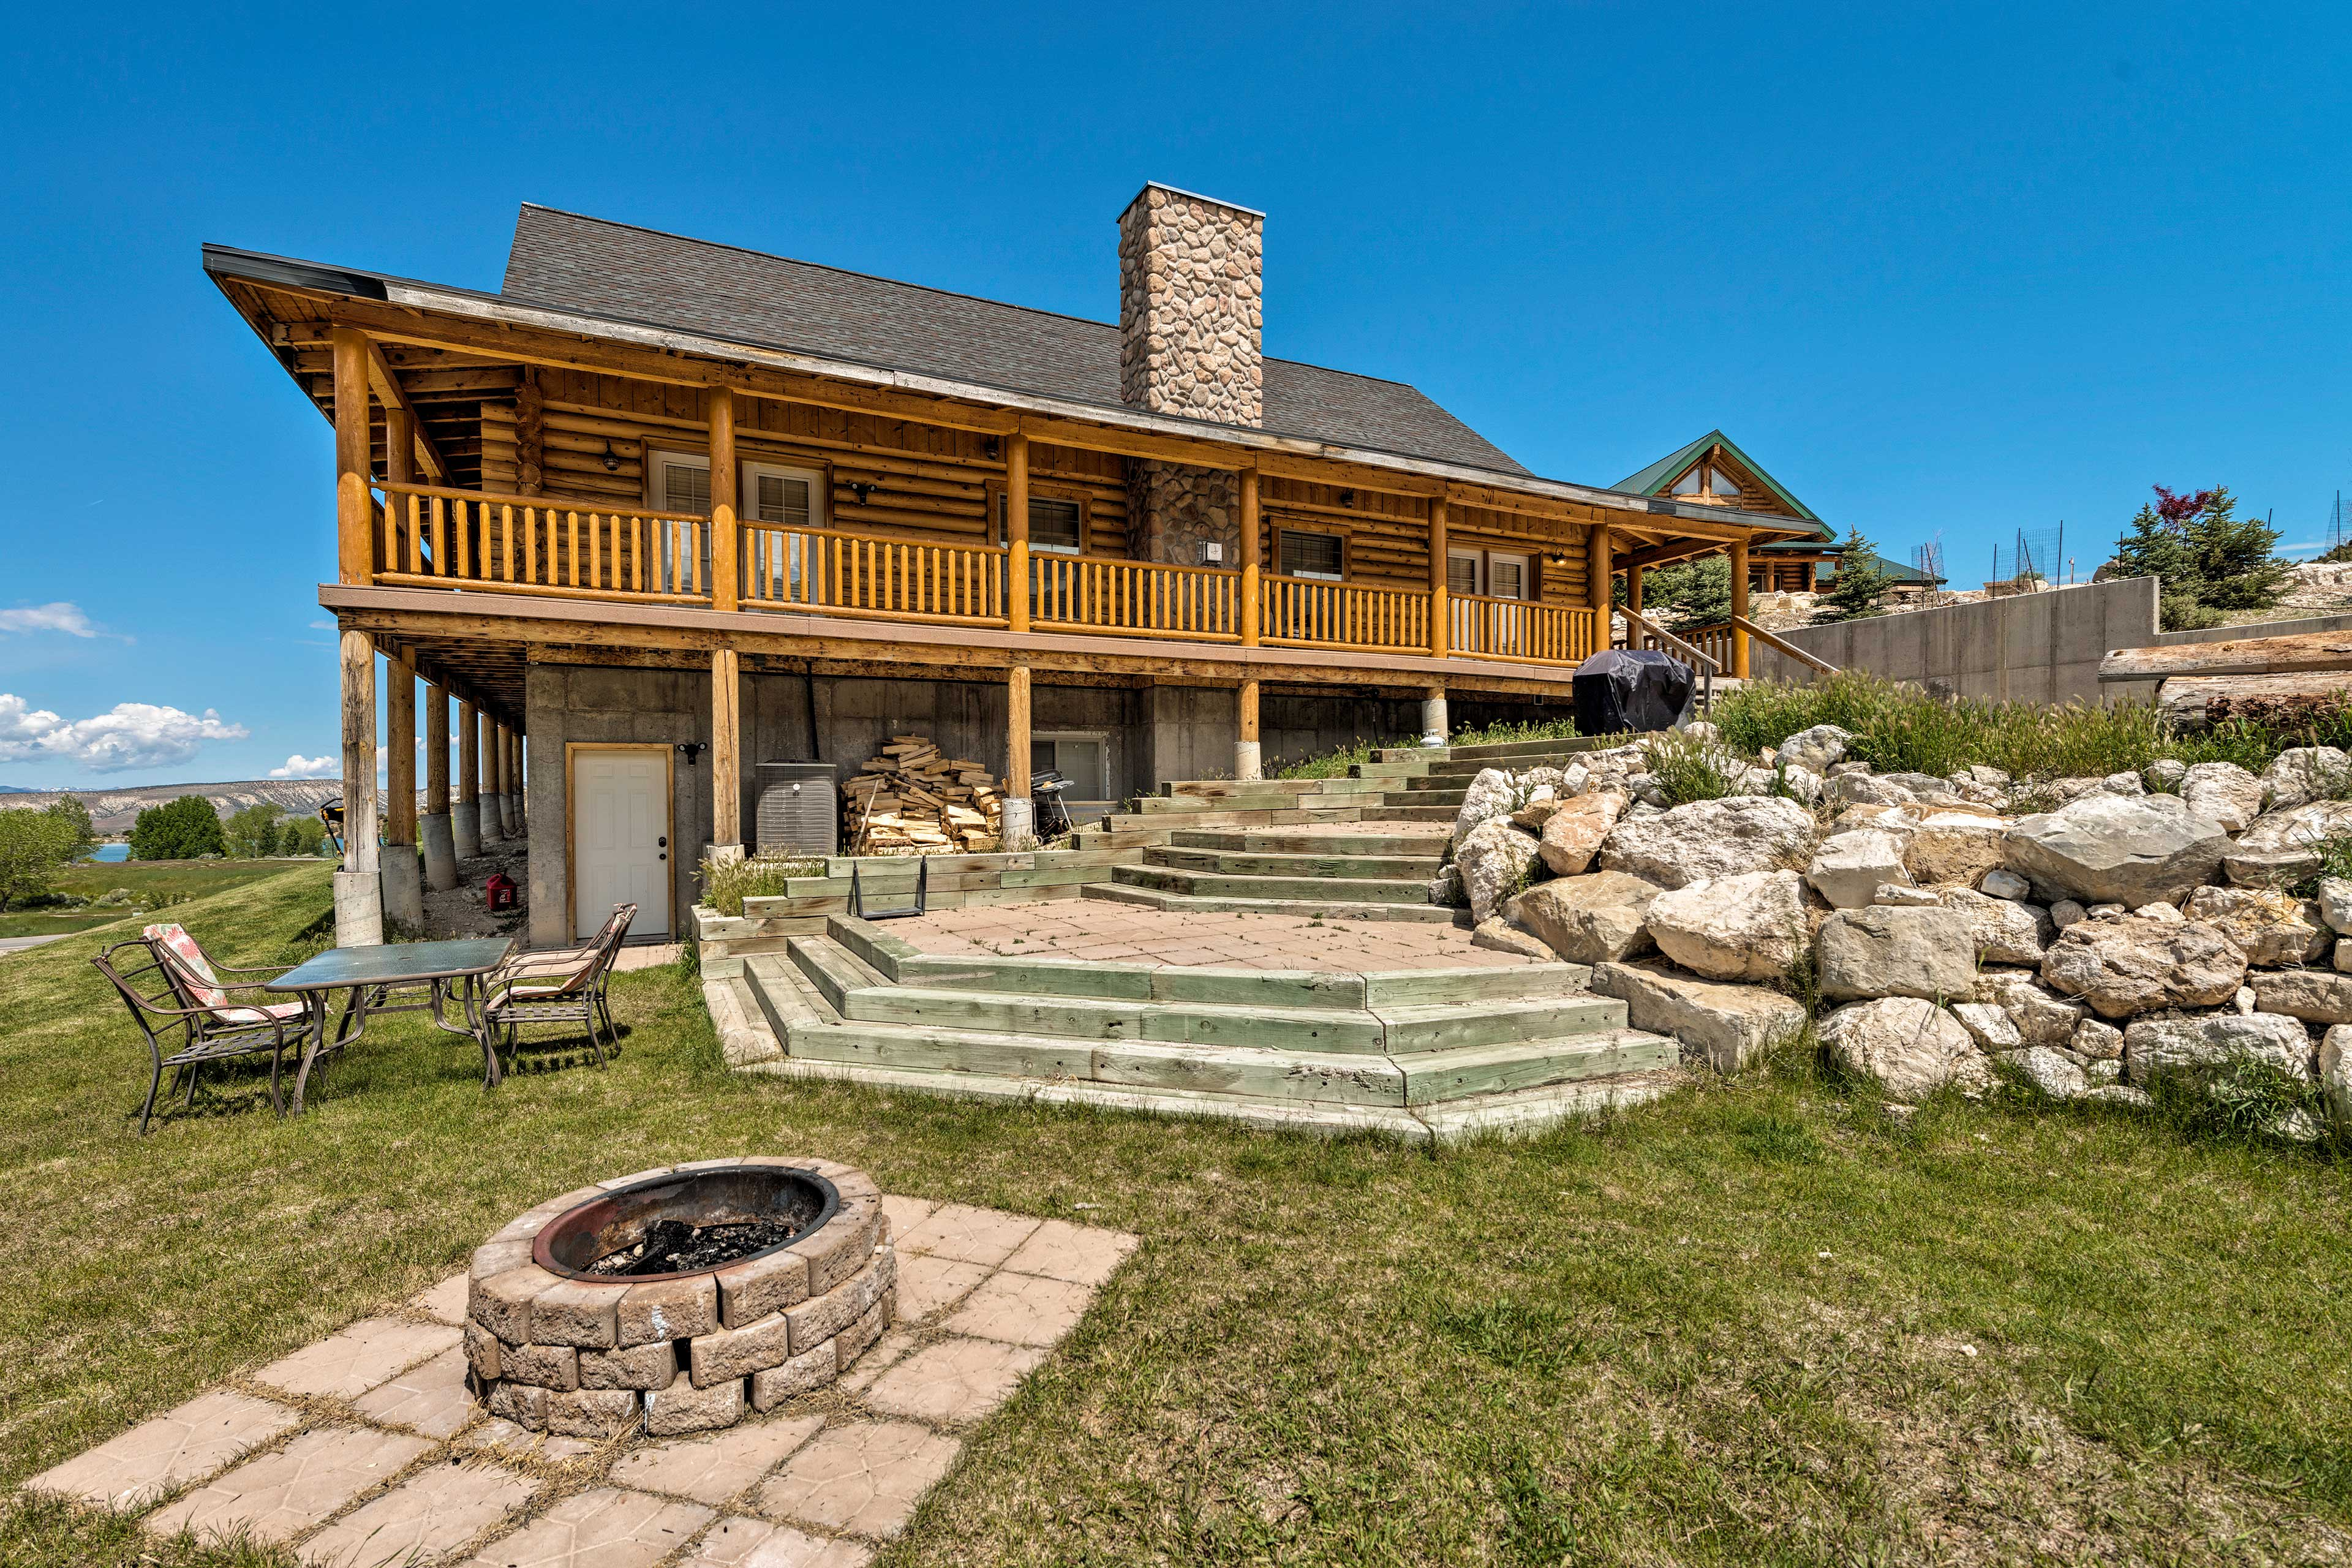 This vacation rental cabin boasts 5,000 square feet.